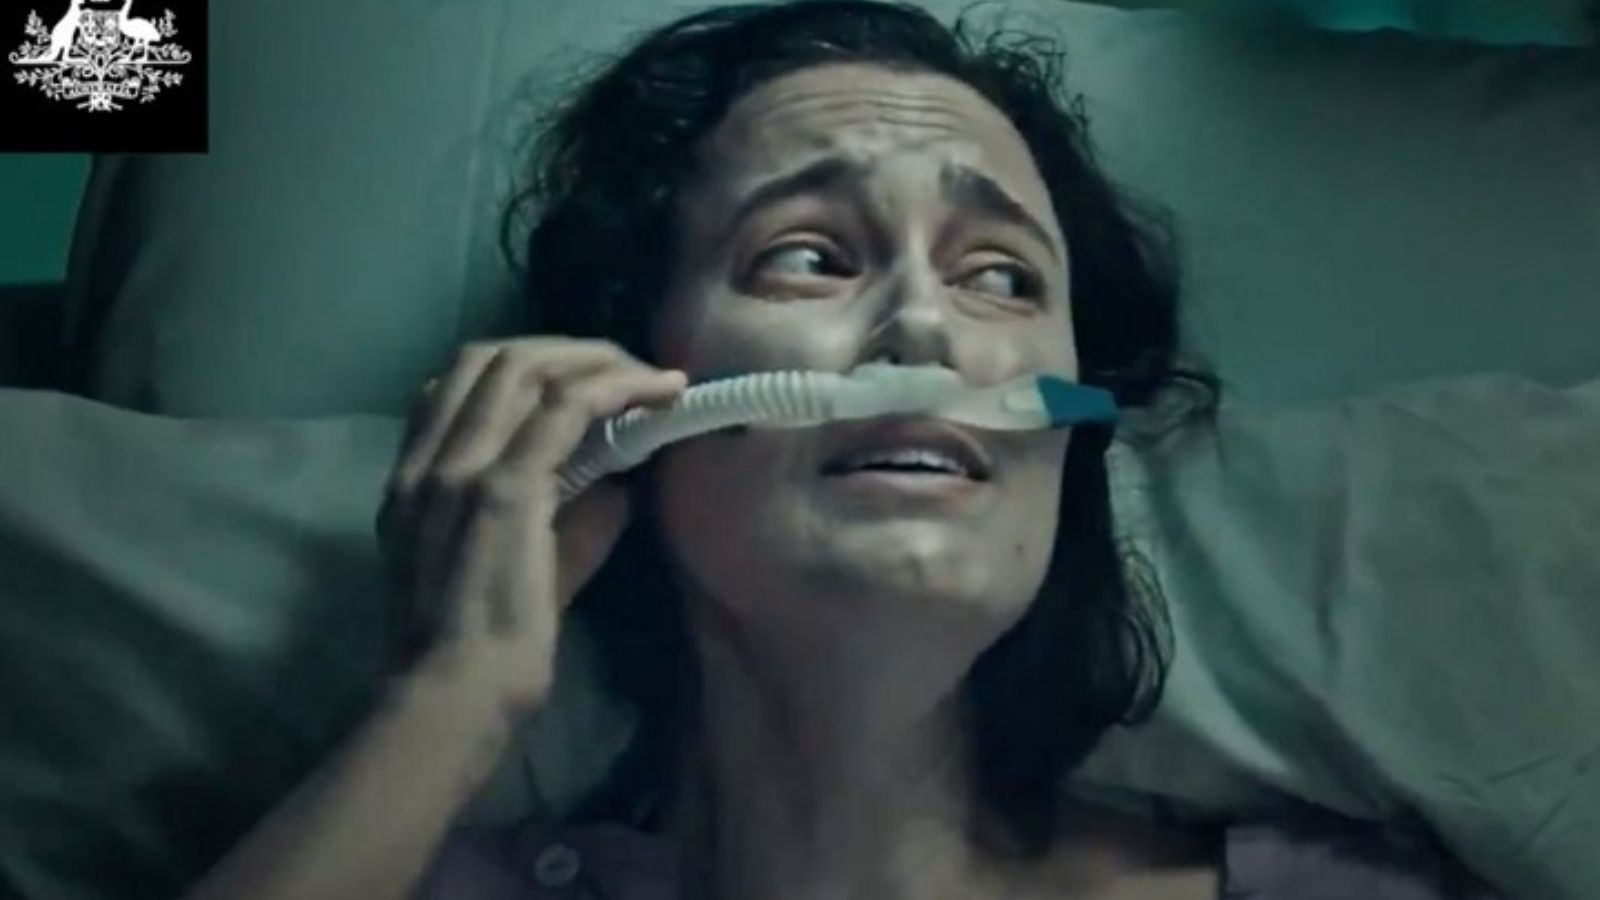 Australia's 'Graphic and Confronting' Covid-19 Ad Could be the Most Hard-Hitting Yet